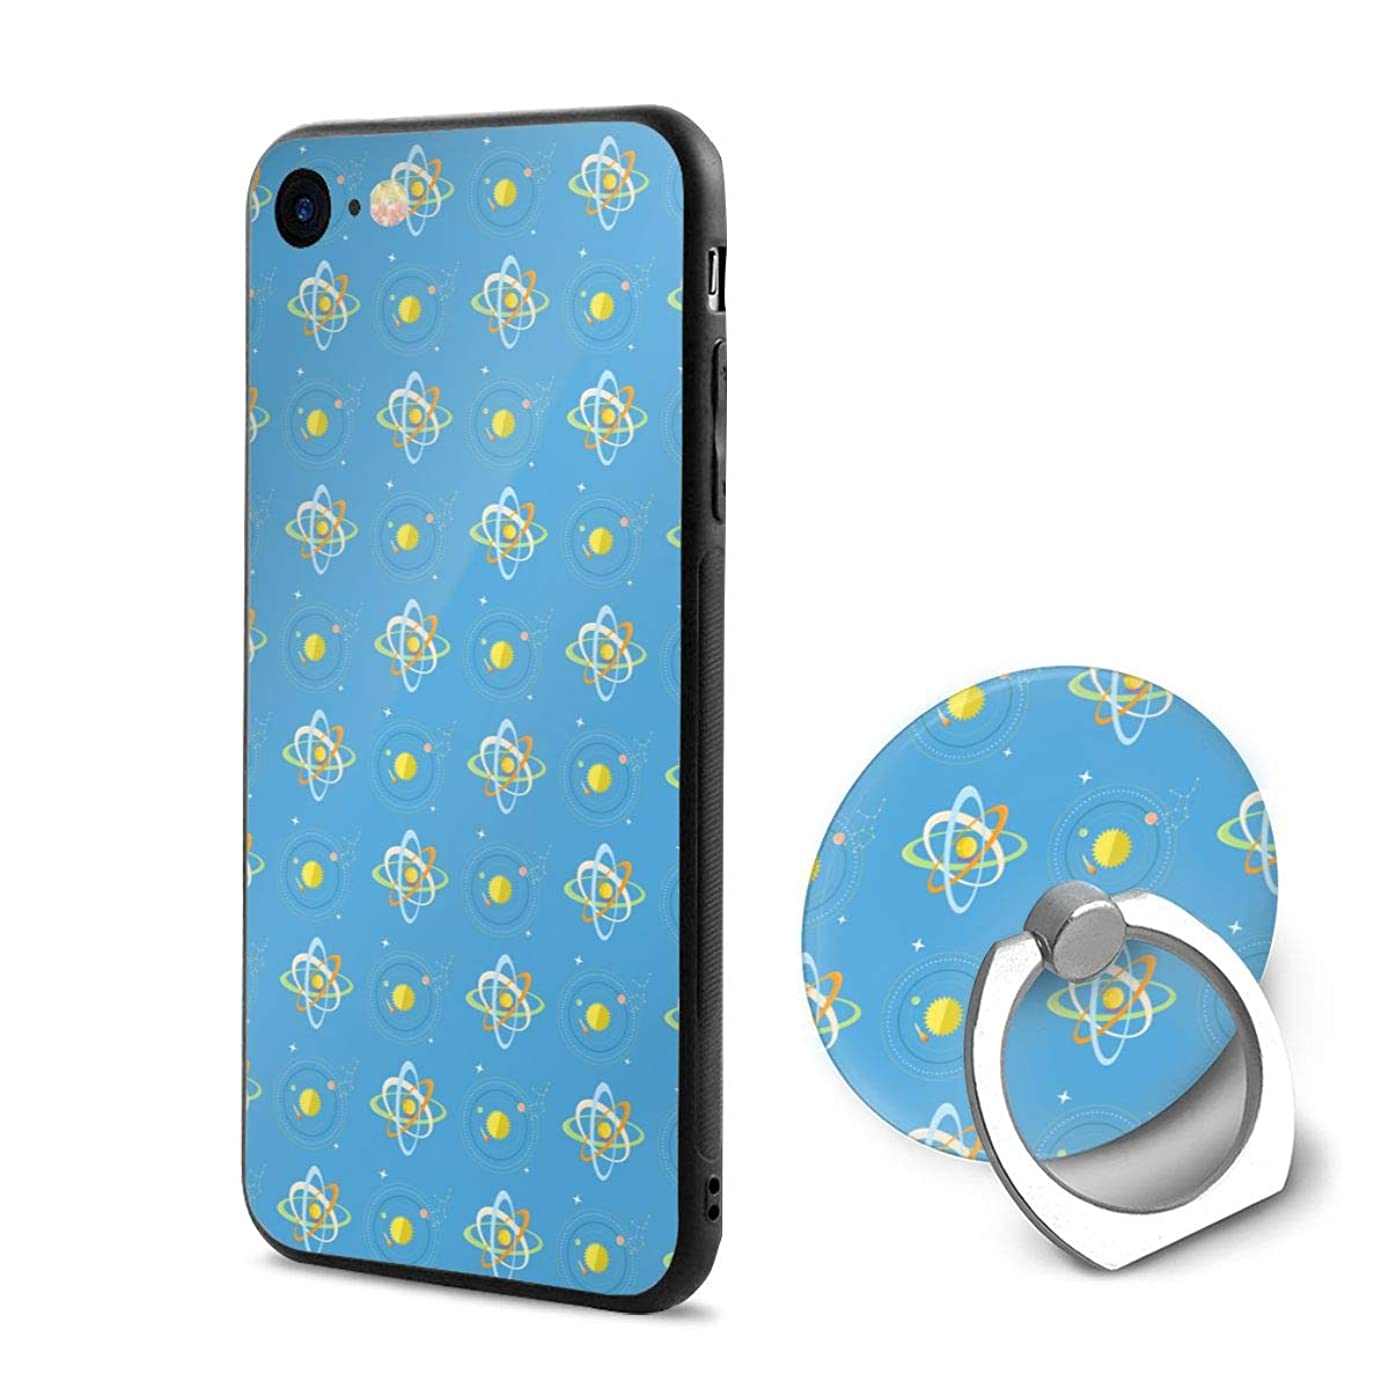 iPhone 6/6s Case Bright Solar System and Planets Rotating Blue 360 Degree Rotating Ring Kickstand Case Shockproof Anti-Scratch Impact Protection Function for iPhone 6/6s